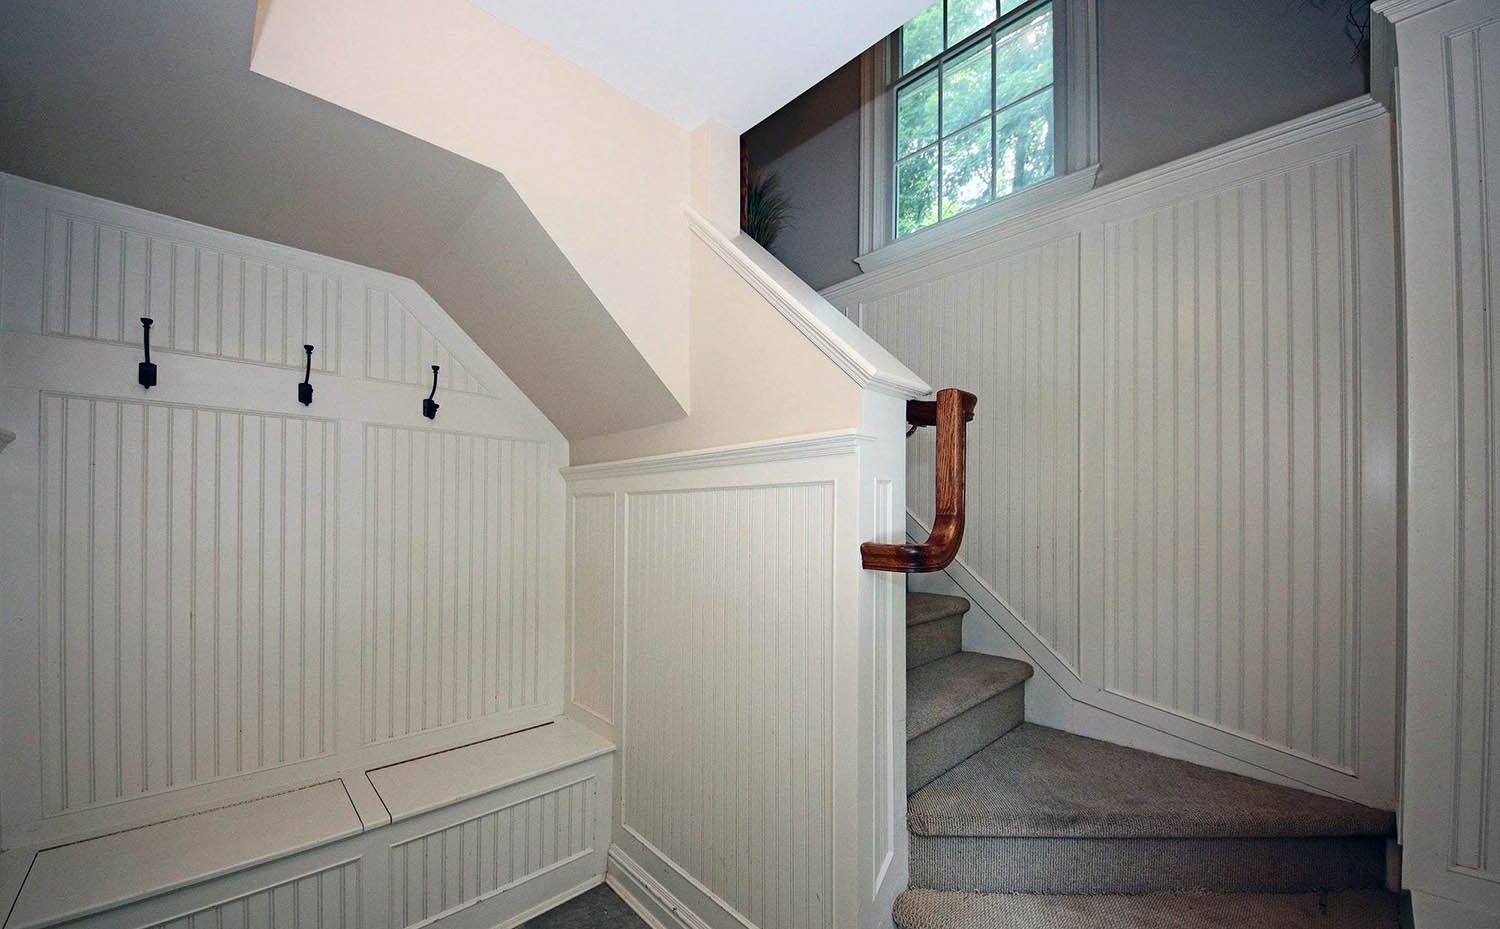 Small mudroom at the base of the stairs in a bi level home